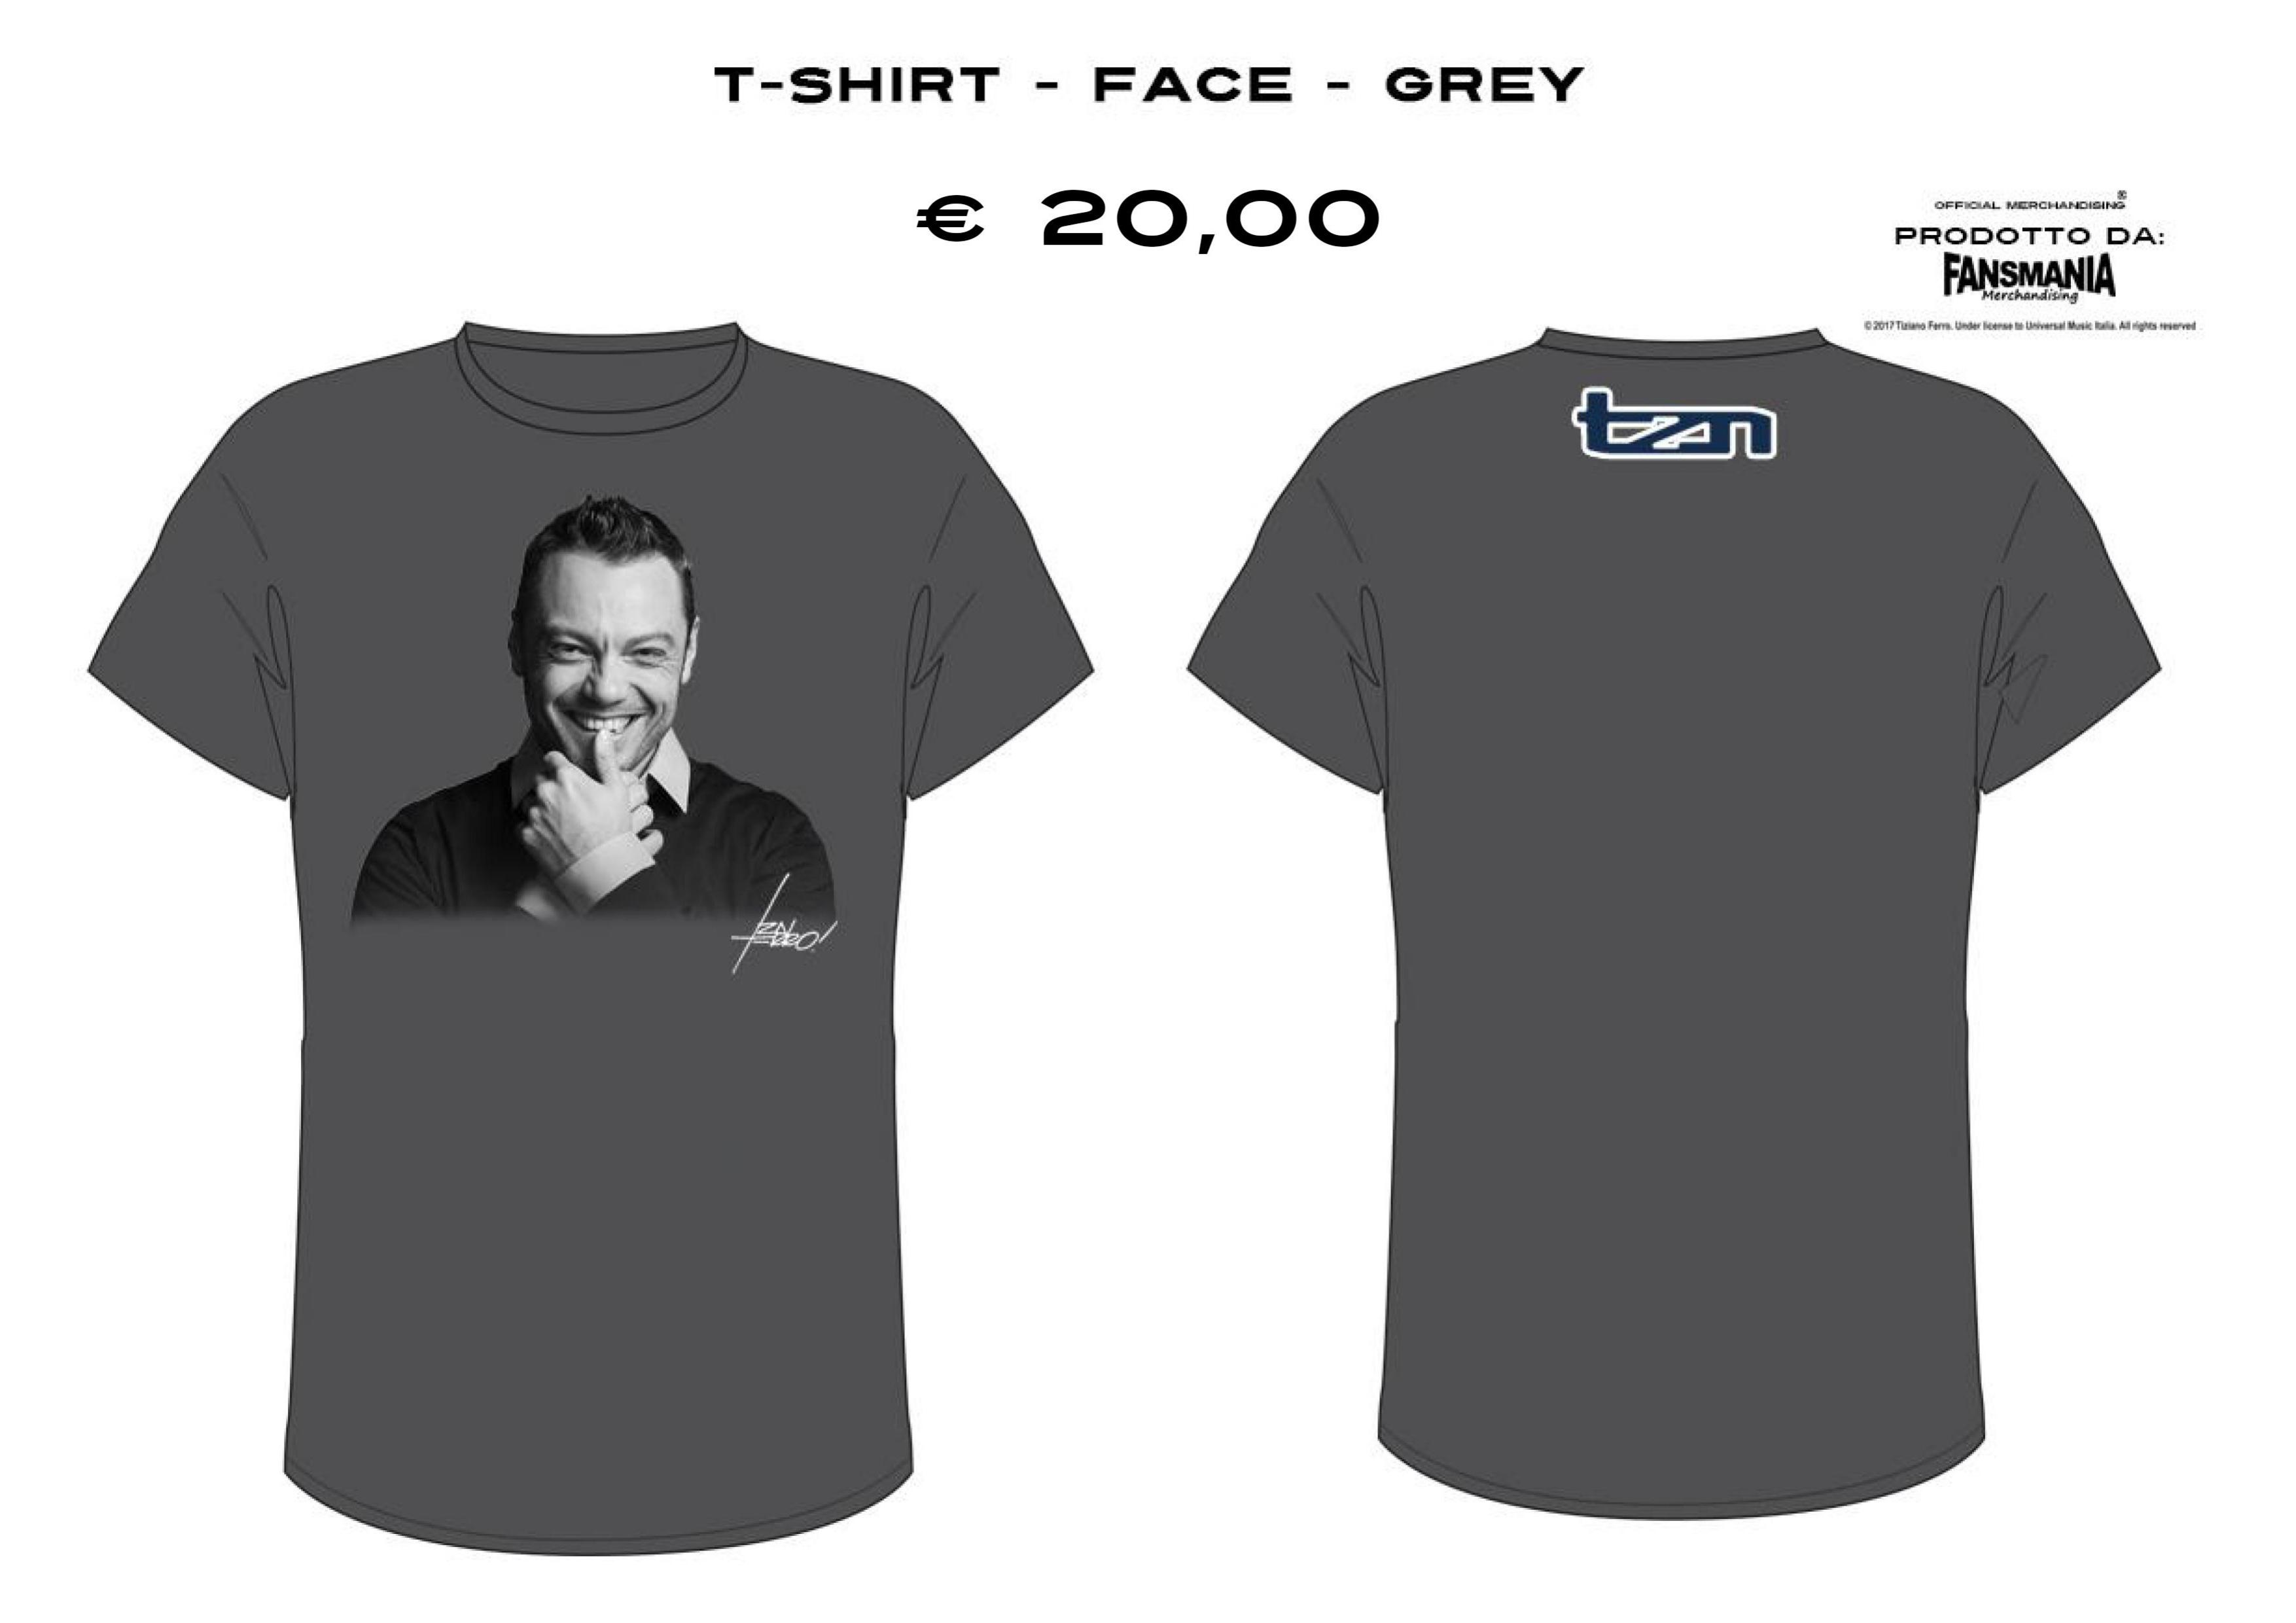 T-SHIRT - FACE - GREY